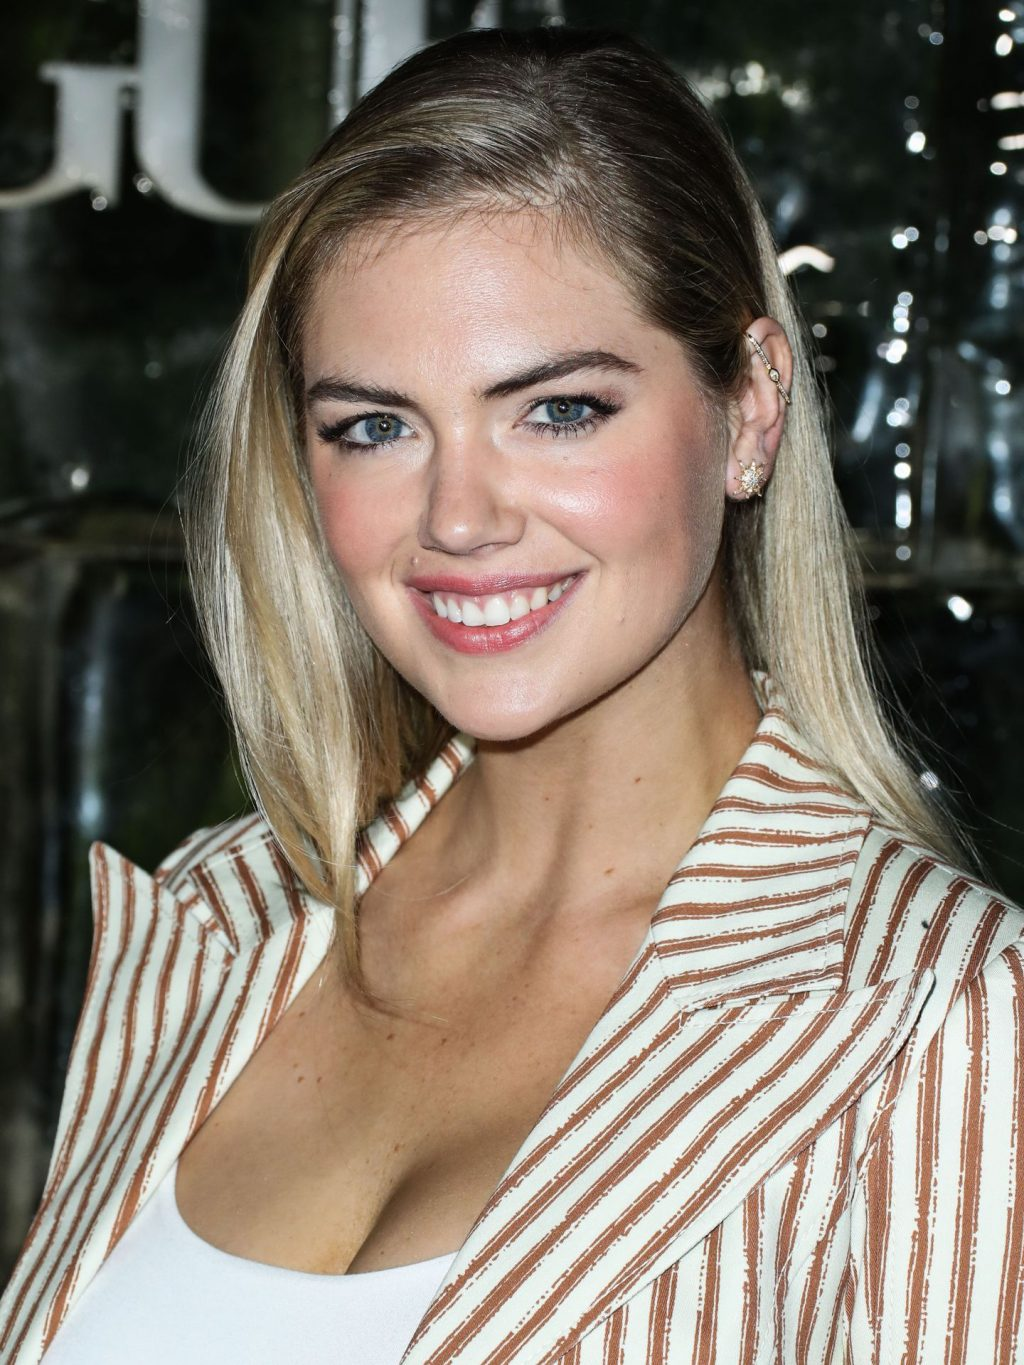 Kate Upton Sexy The Fappening Blog 68 1024x1365 - Kate Upton Attends Canada Goose And Vogue Cocktails & Conversations (104 Photos)